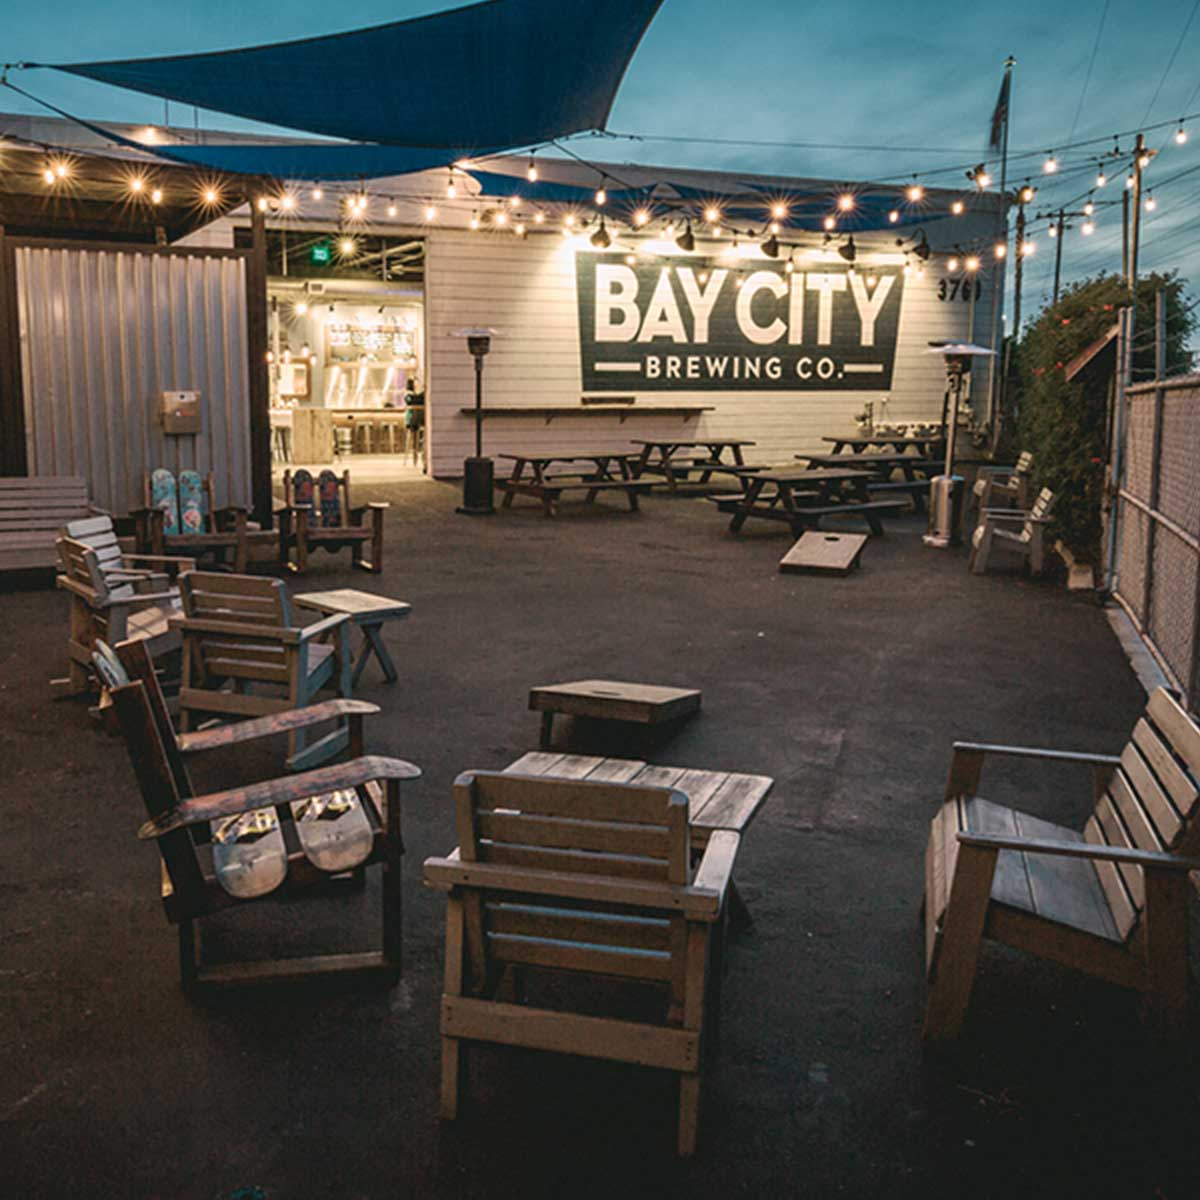 https://baycitybrewingco.com/wp-content/uploads/2019/02/patio_2x.jpg